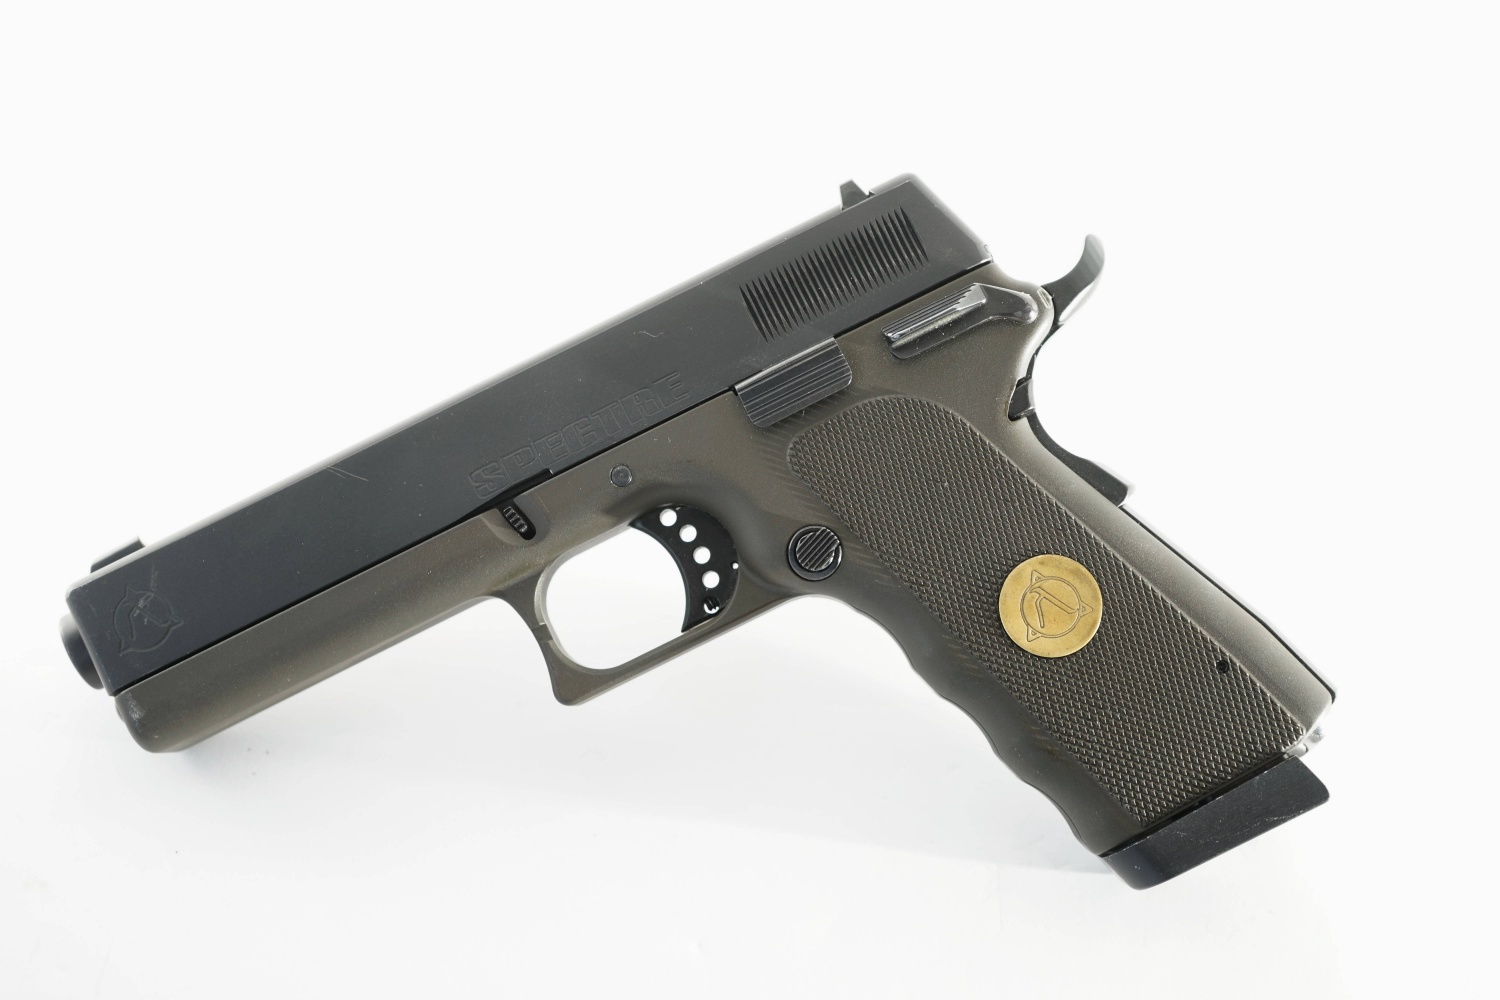 The Real Glock 1911: The Alchemy Arms Spectre - The Firearm BlogThe Firearm Blog